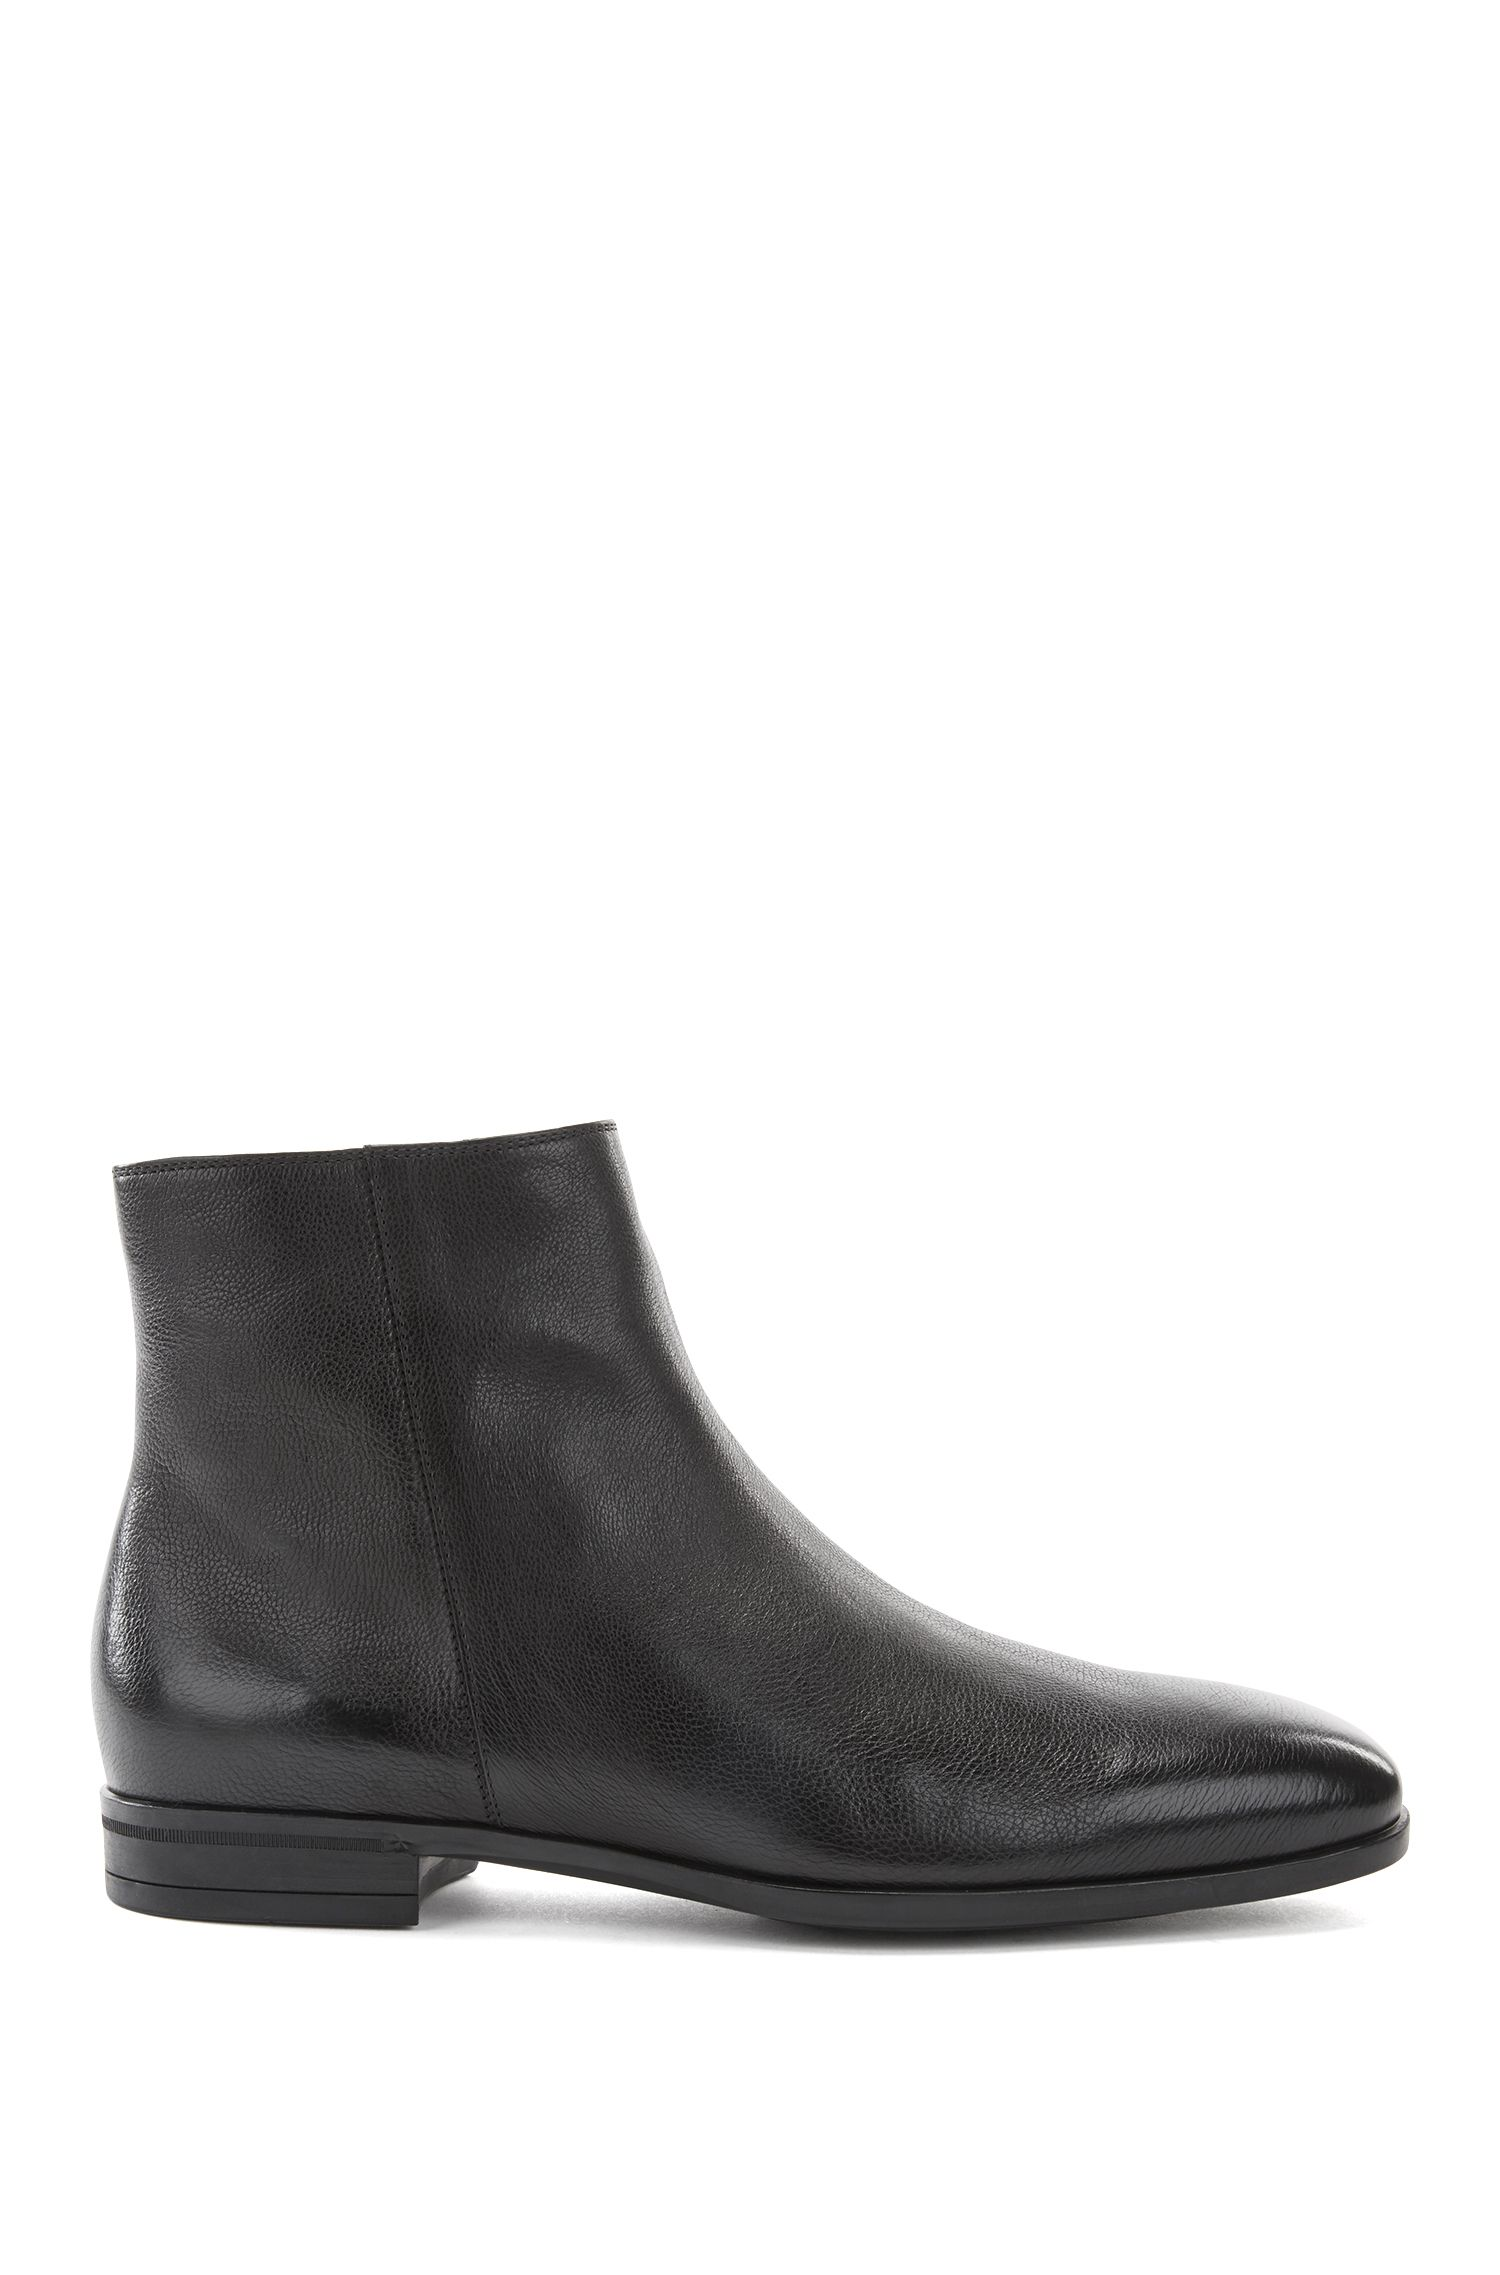 Grainy calf-leather boots with shearling lining, Black